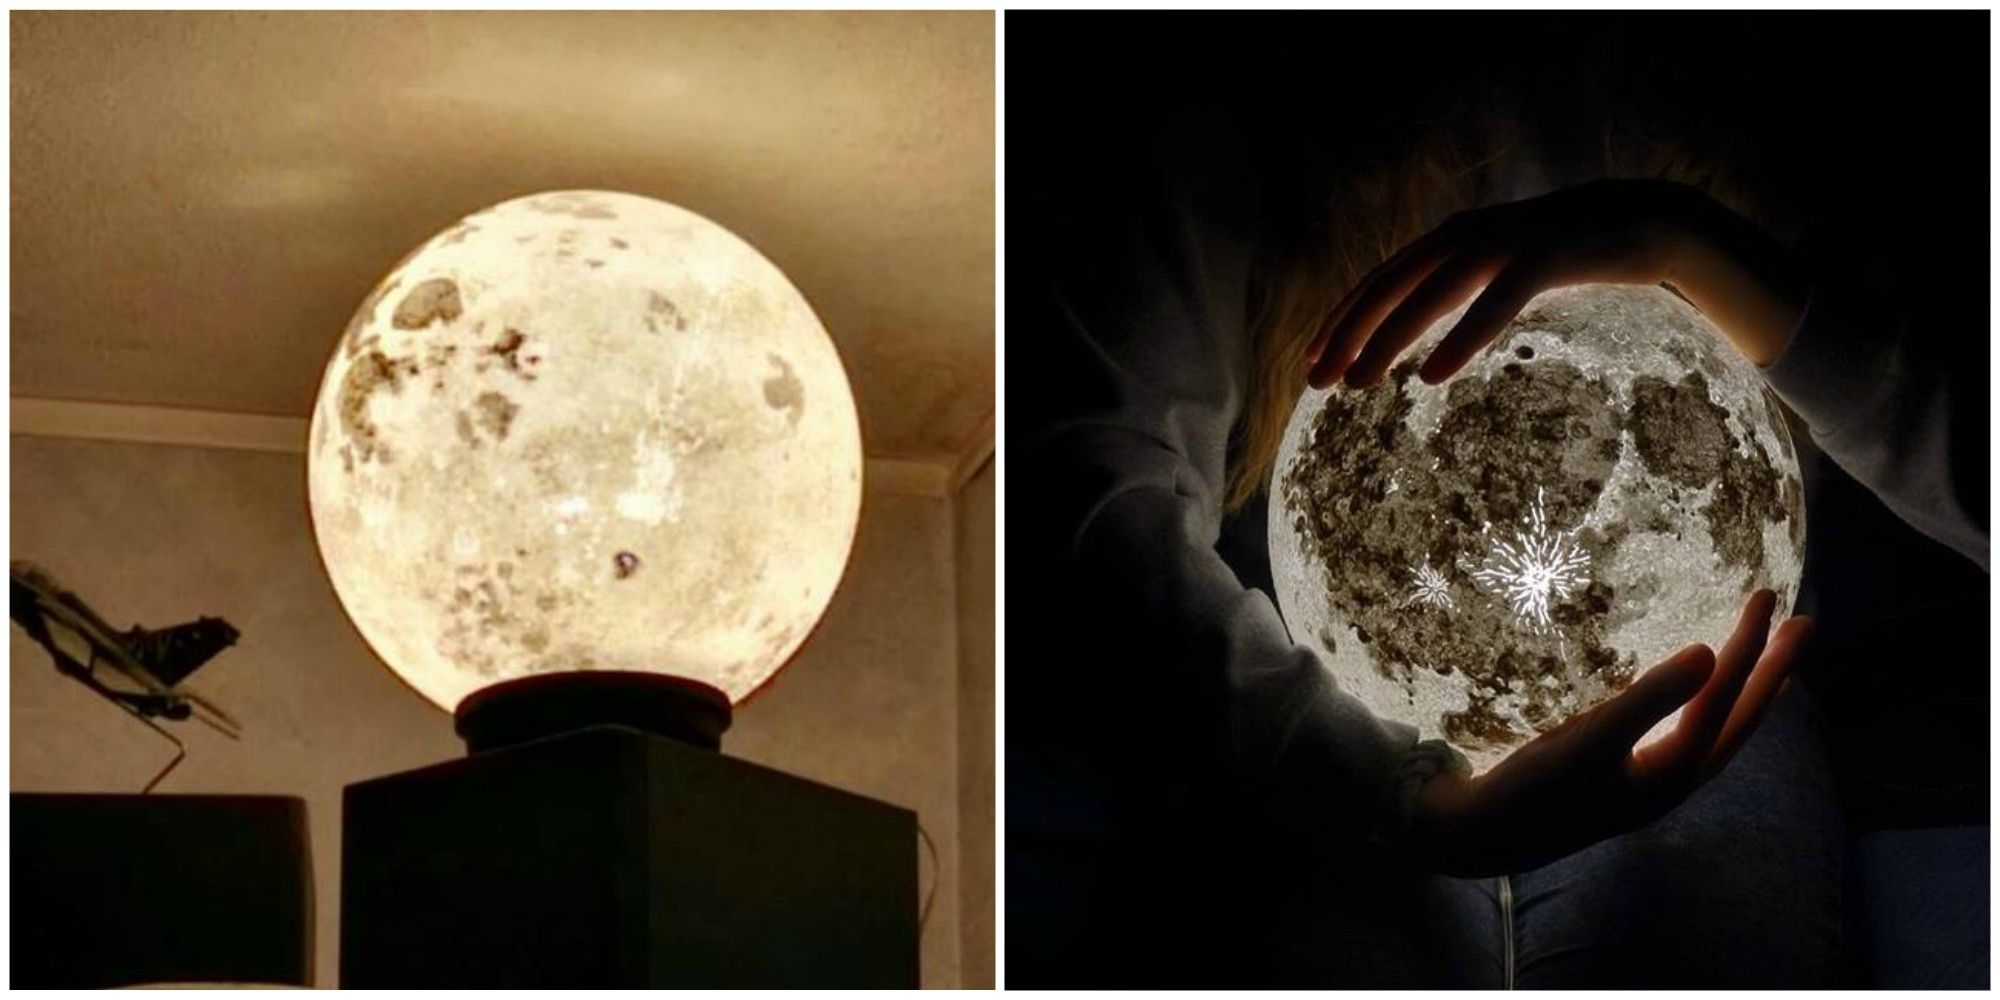 Enjoy Full Moon Every Night With These Lamps From Pulsar Moonlight for Moon Lamp Hanging  285eri